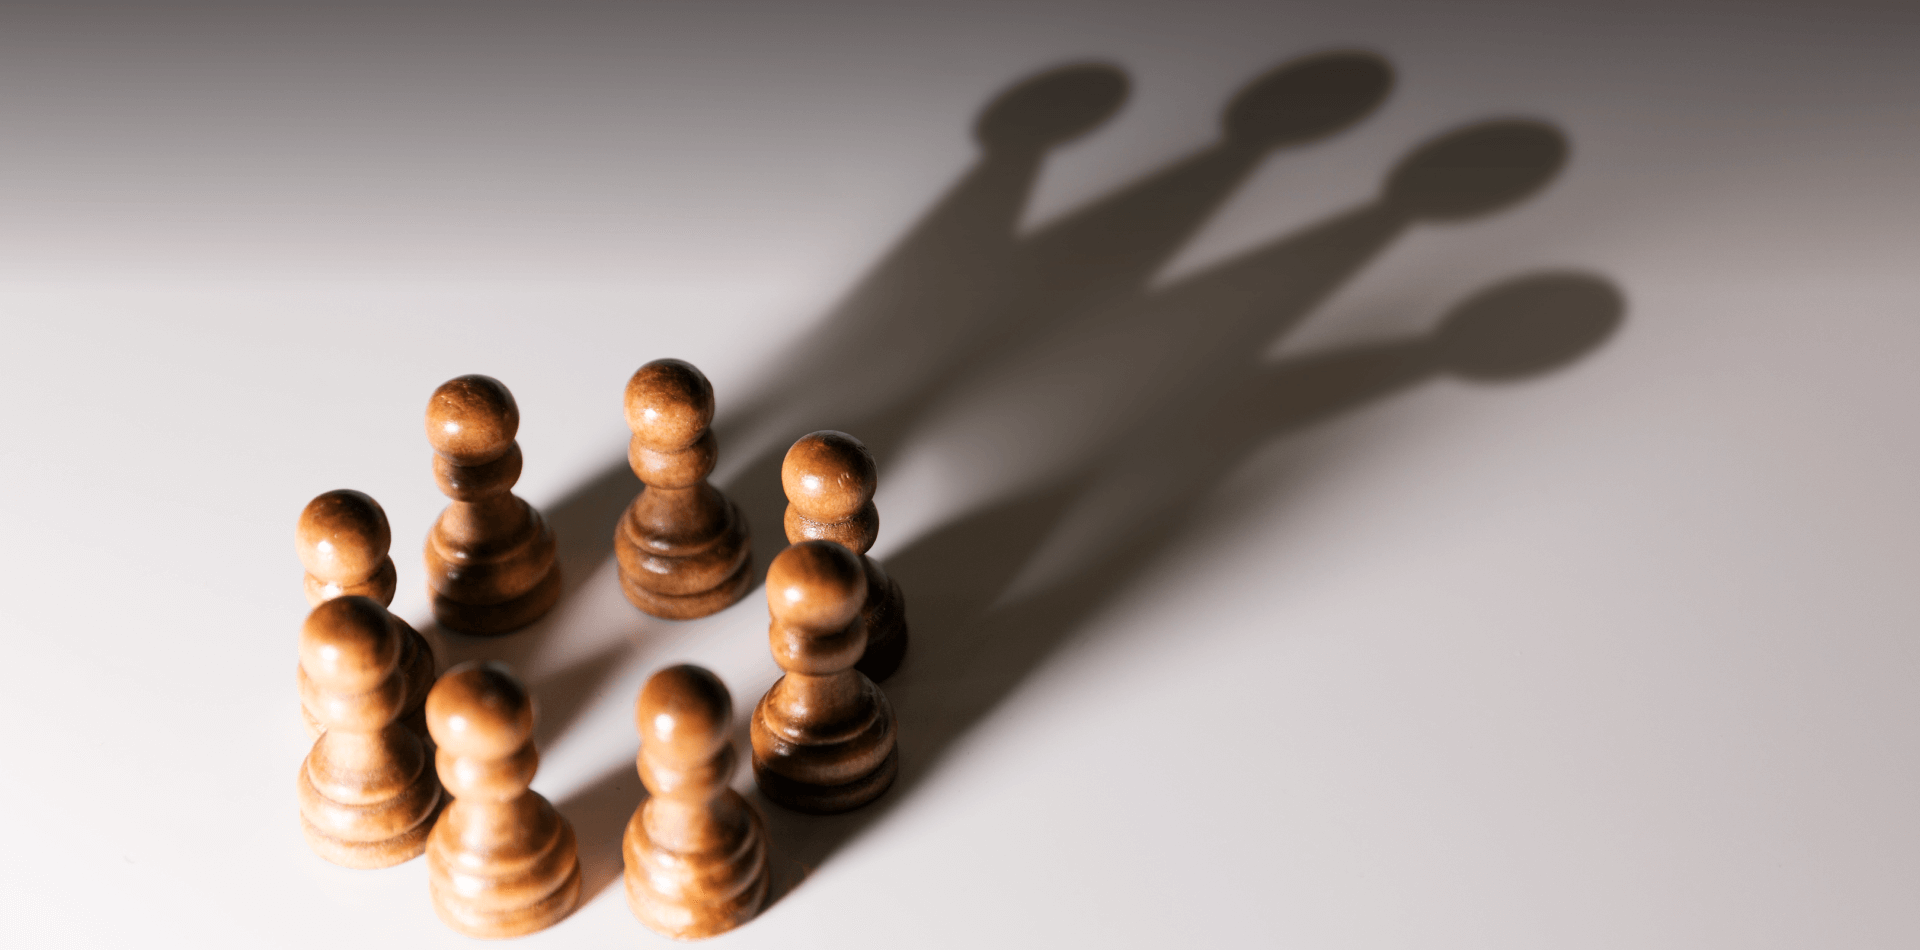 A group of pawns shadows creating a crown